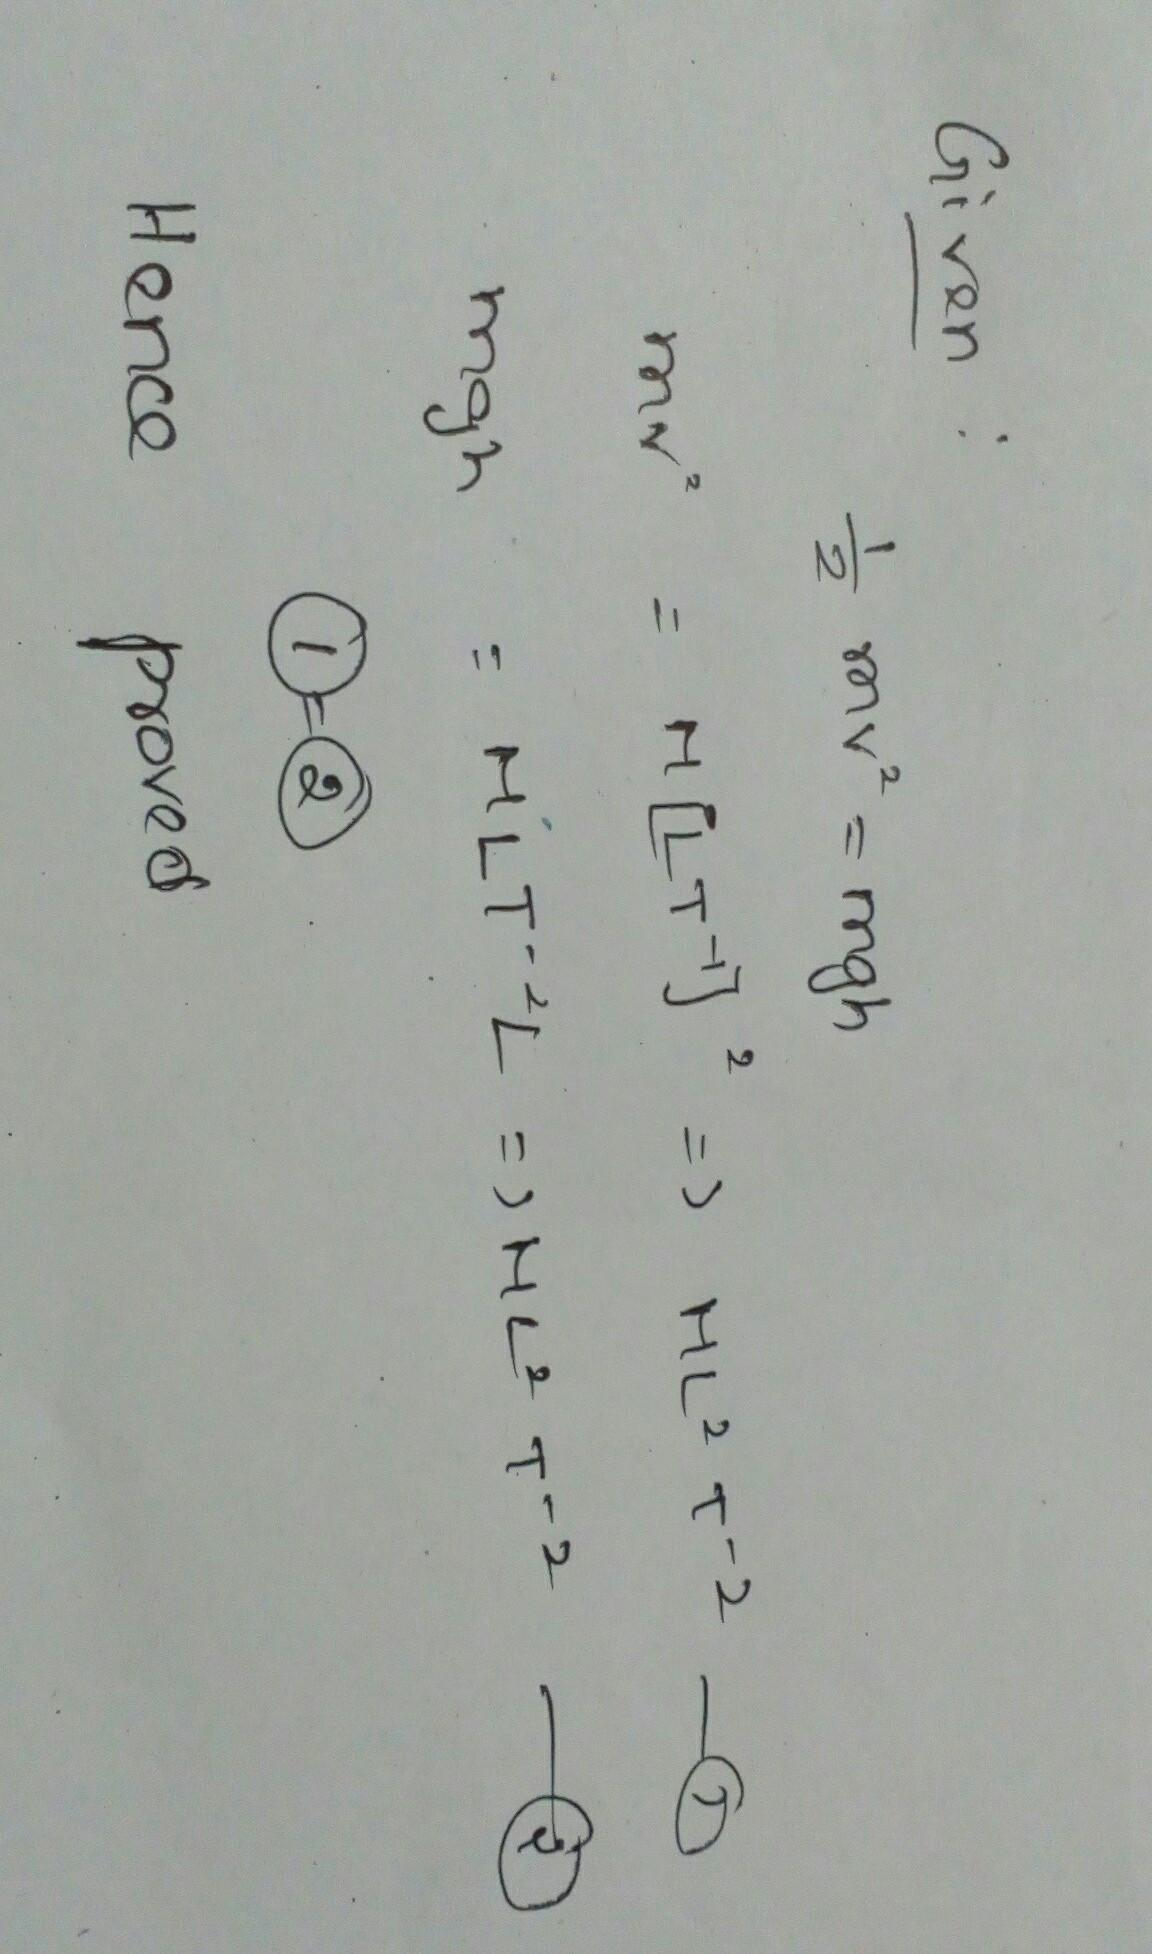 consider an equation 1/2mv^2 = mgh where m is the mass of